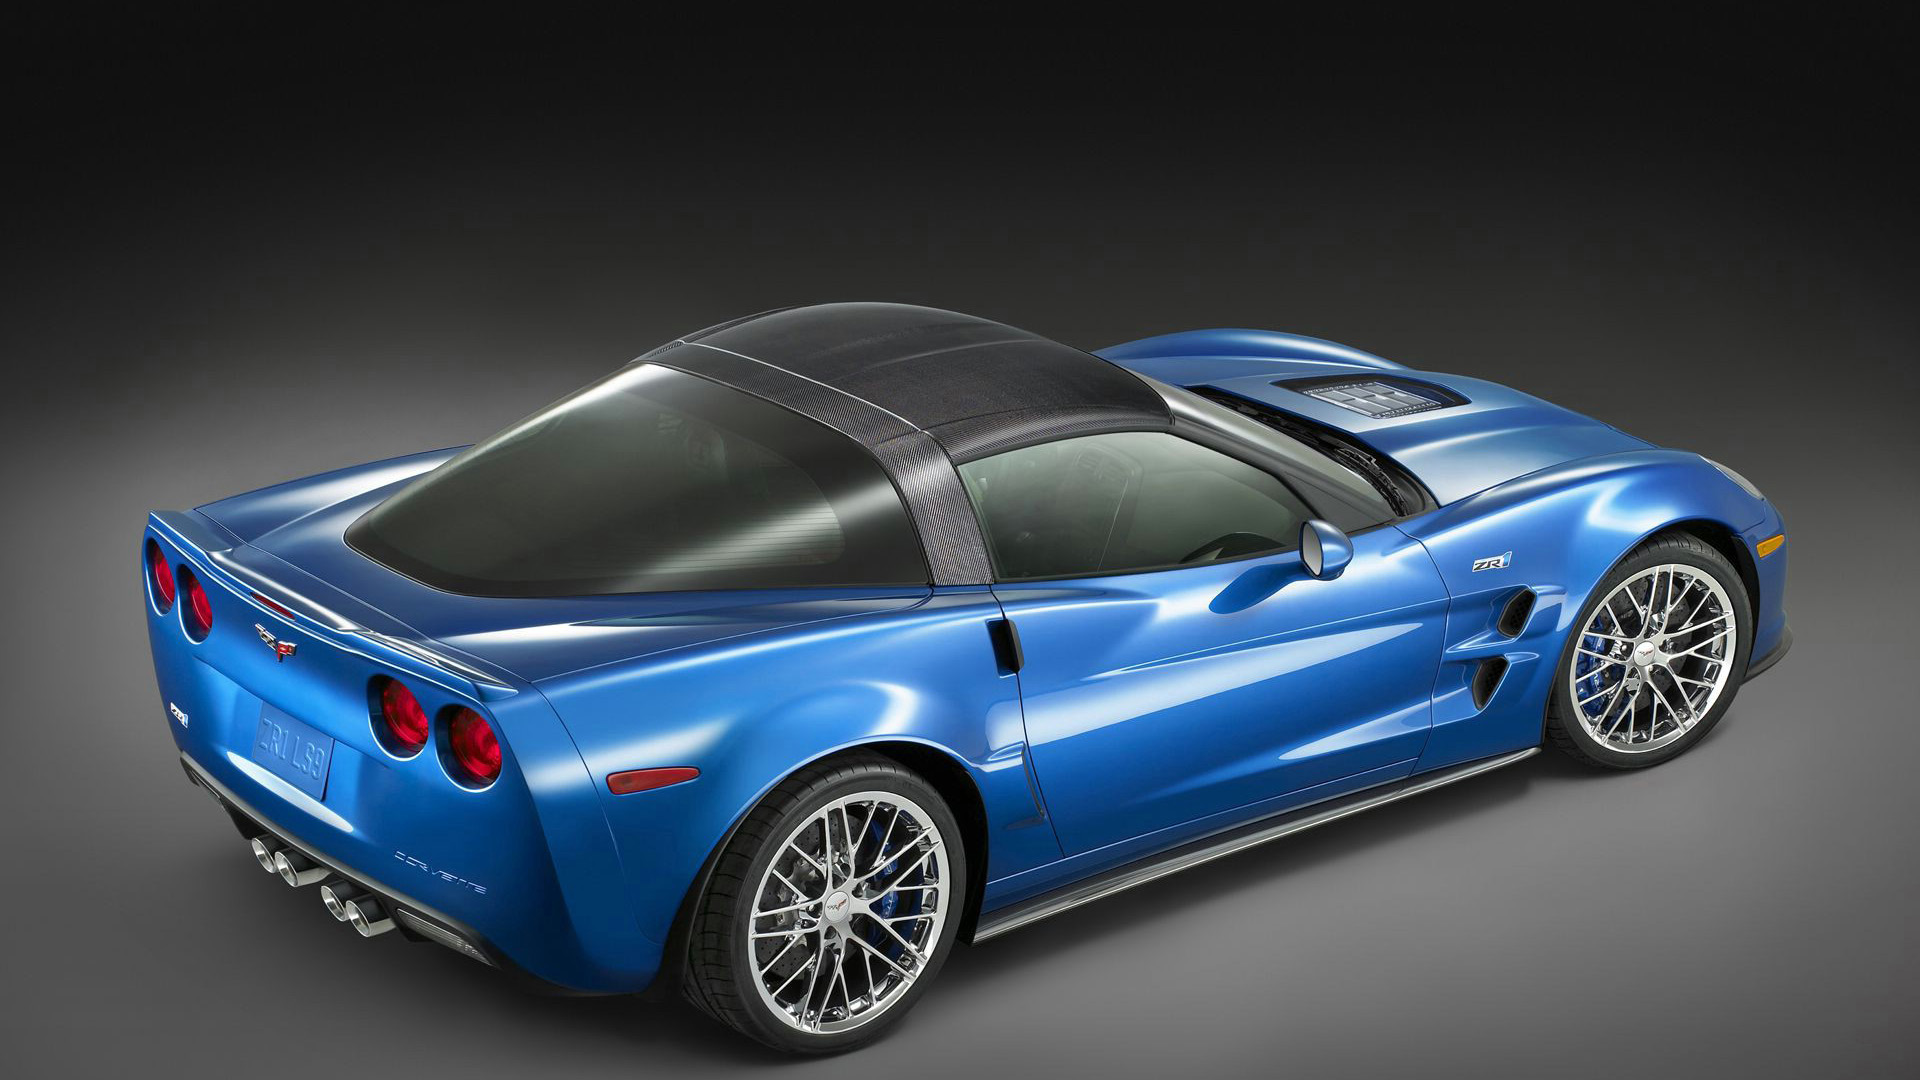 ... Corvette HD Wallpaper-1080p Free HD Resolutions | Car Wallpapers